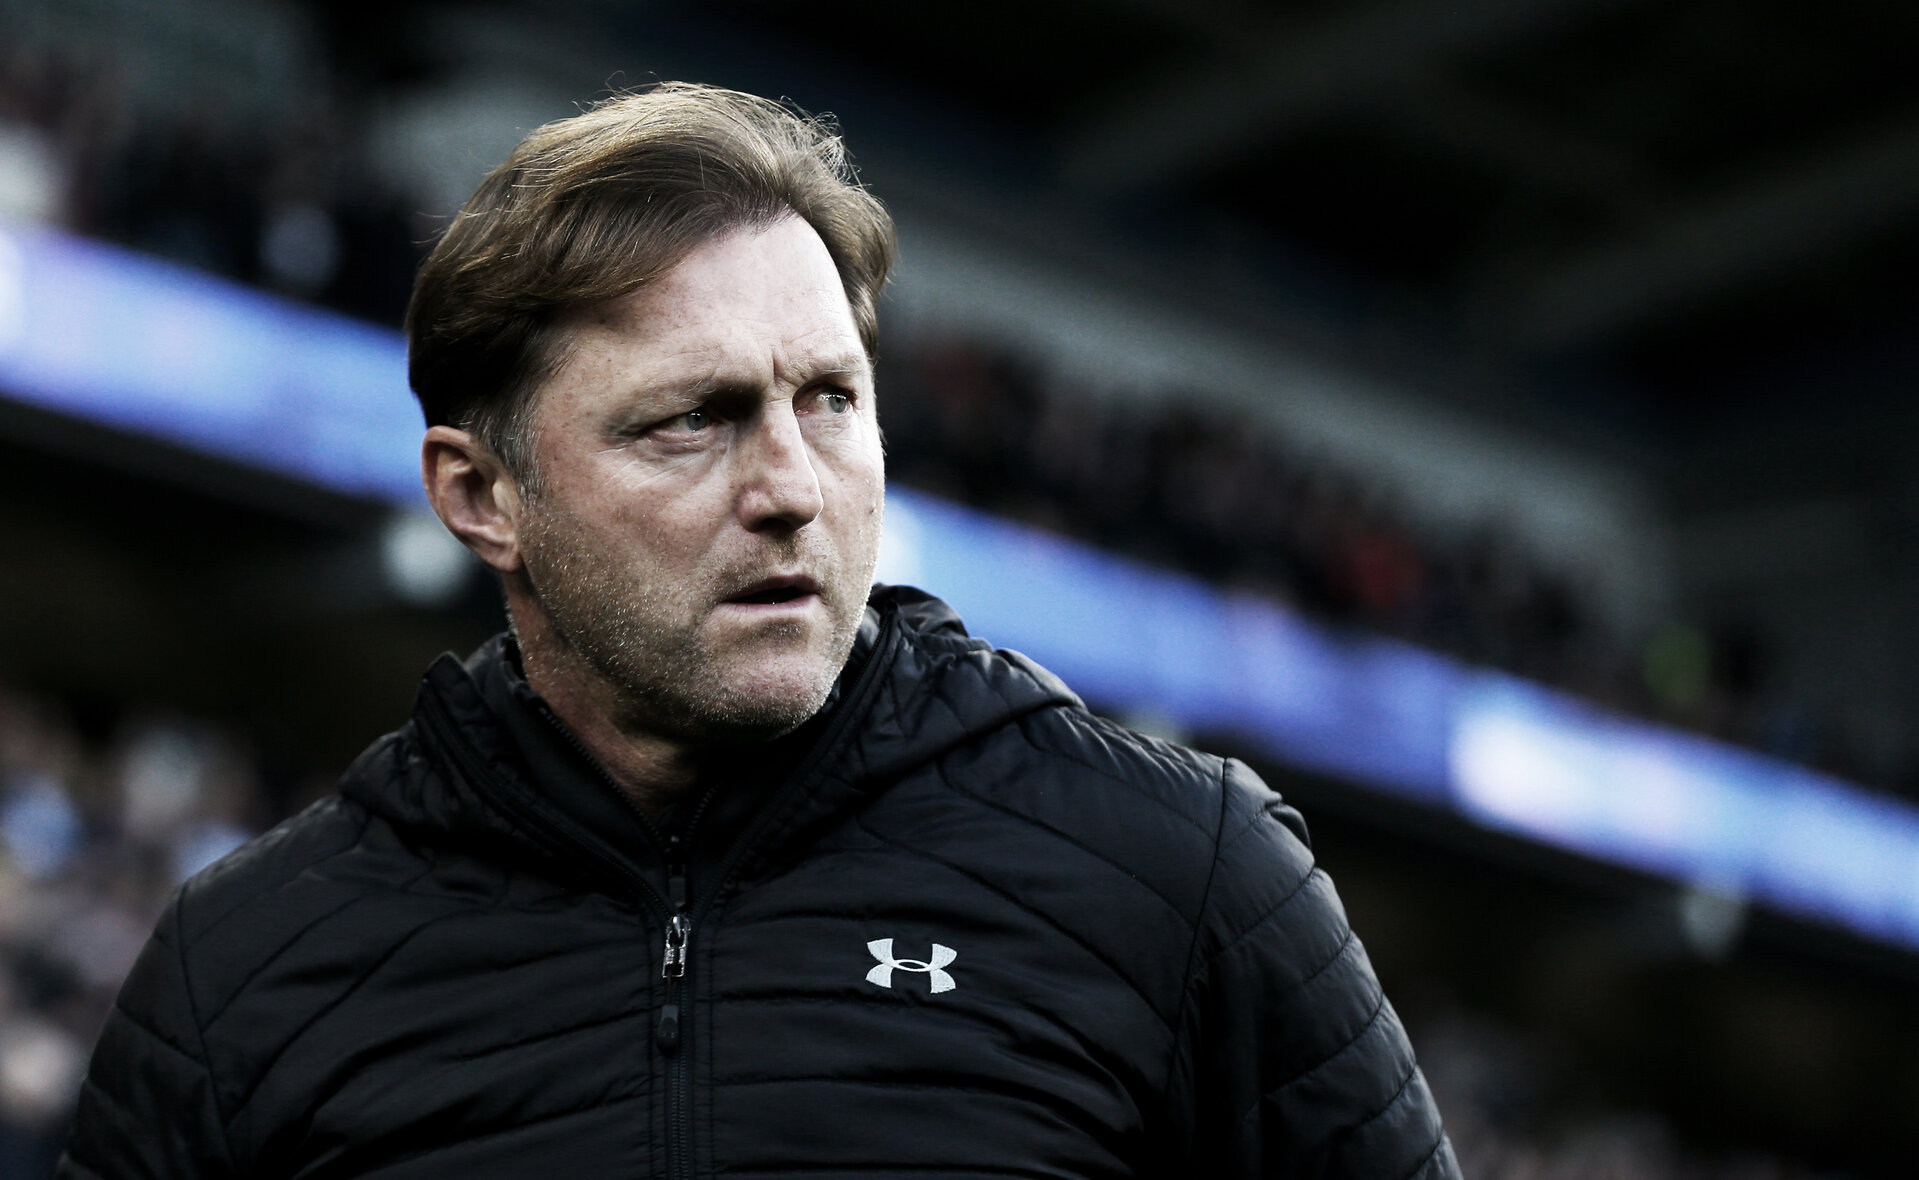 CARDIFF, WALES - DECEMBER 08: Ralph Hasenhüttl of Southampton during the Premier League match between Cardiff City and Southampton FC at Cardiff City Stadium on December 8, 2018 in Cardiff, United Kingdom. (Photo by Matt Watson/Southampton FC via Getty Images)